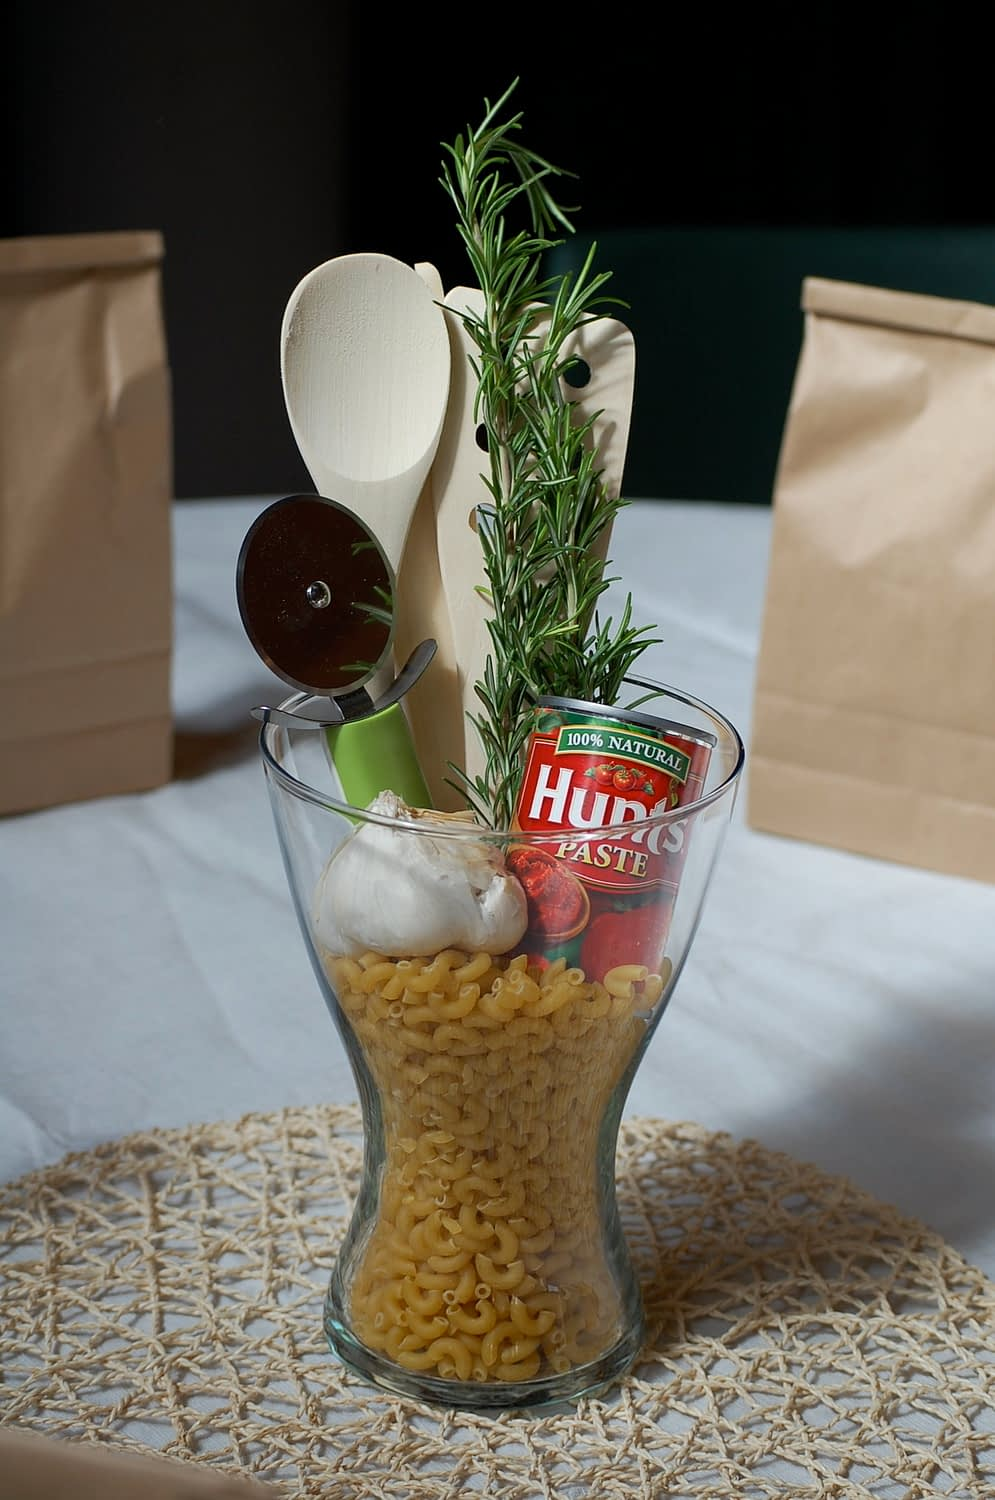 A simple glass vase from Ikea, filled with macaroni elbows (large bag from Smart & Final), a pizza cutter and wooden spoons from Ikea, a bundle of Rosemarry, a can of Hunts Tomatoe Paste and a fresh bulb of garlic! The base of the center piece was a placemat that I found at Ikea that looked like spgahetti to me:)